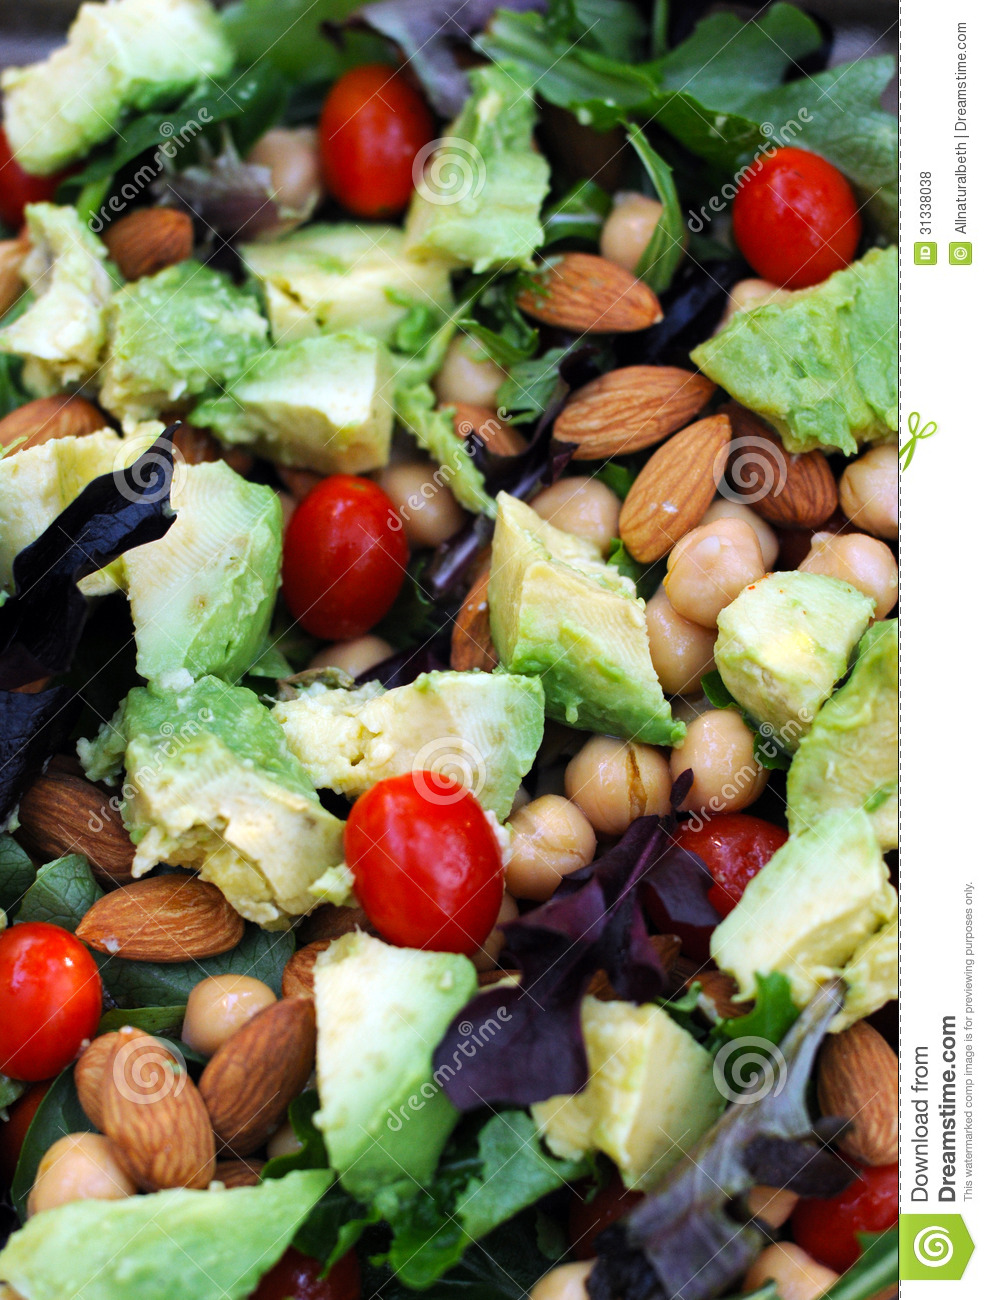 Healthy Vegetarian Salad With Nuts And Vegetables Royalty ...